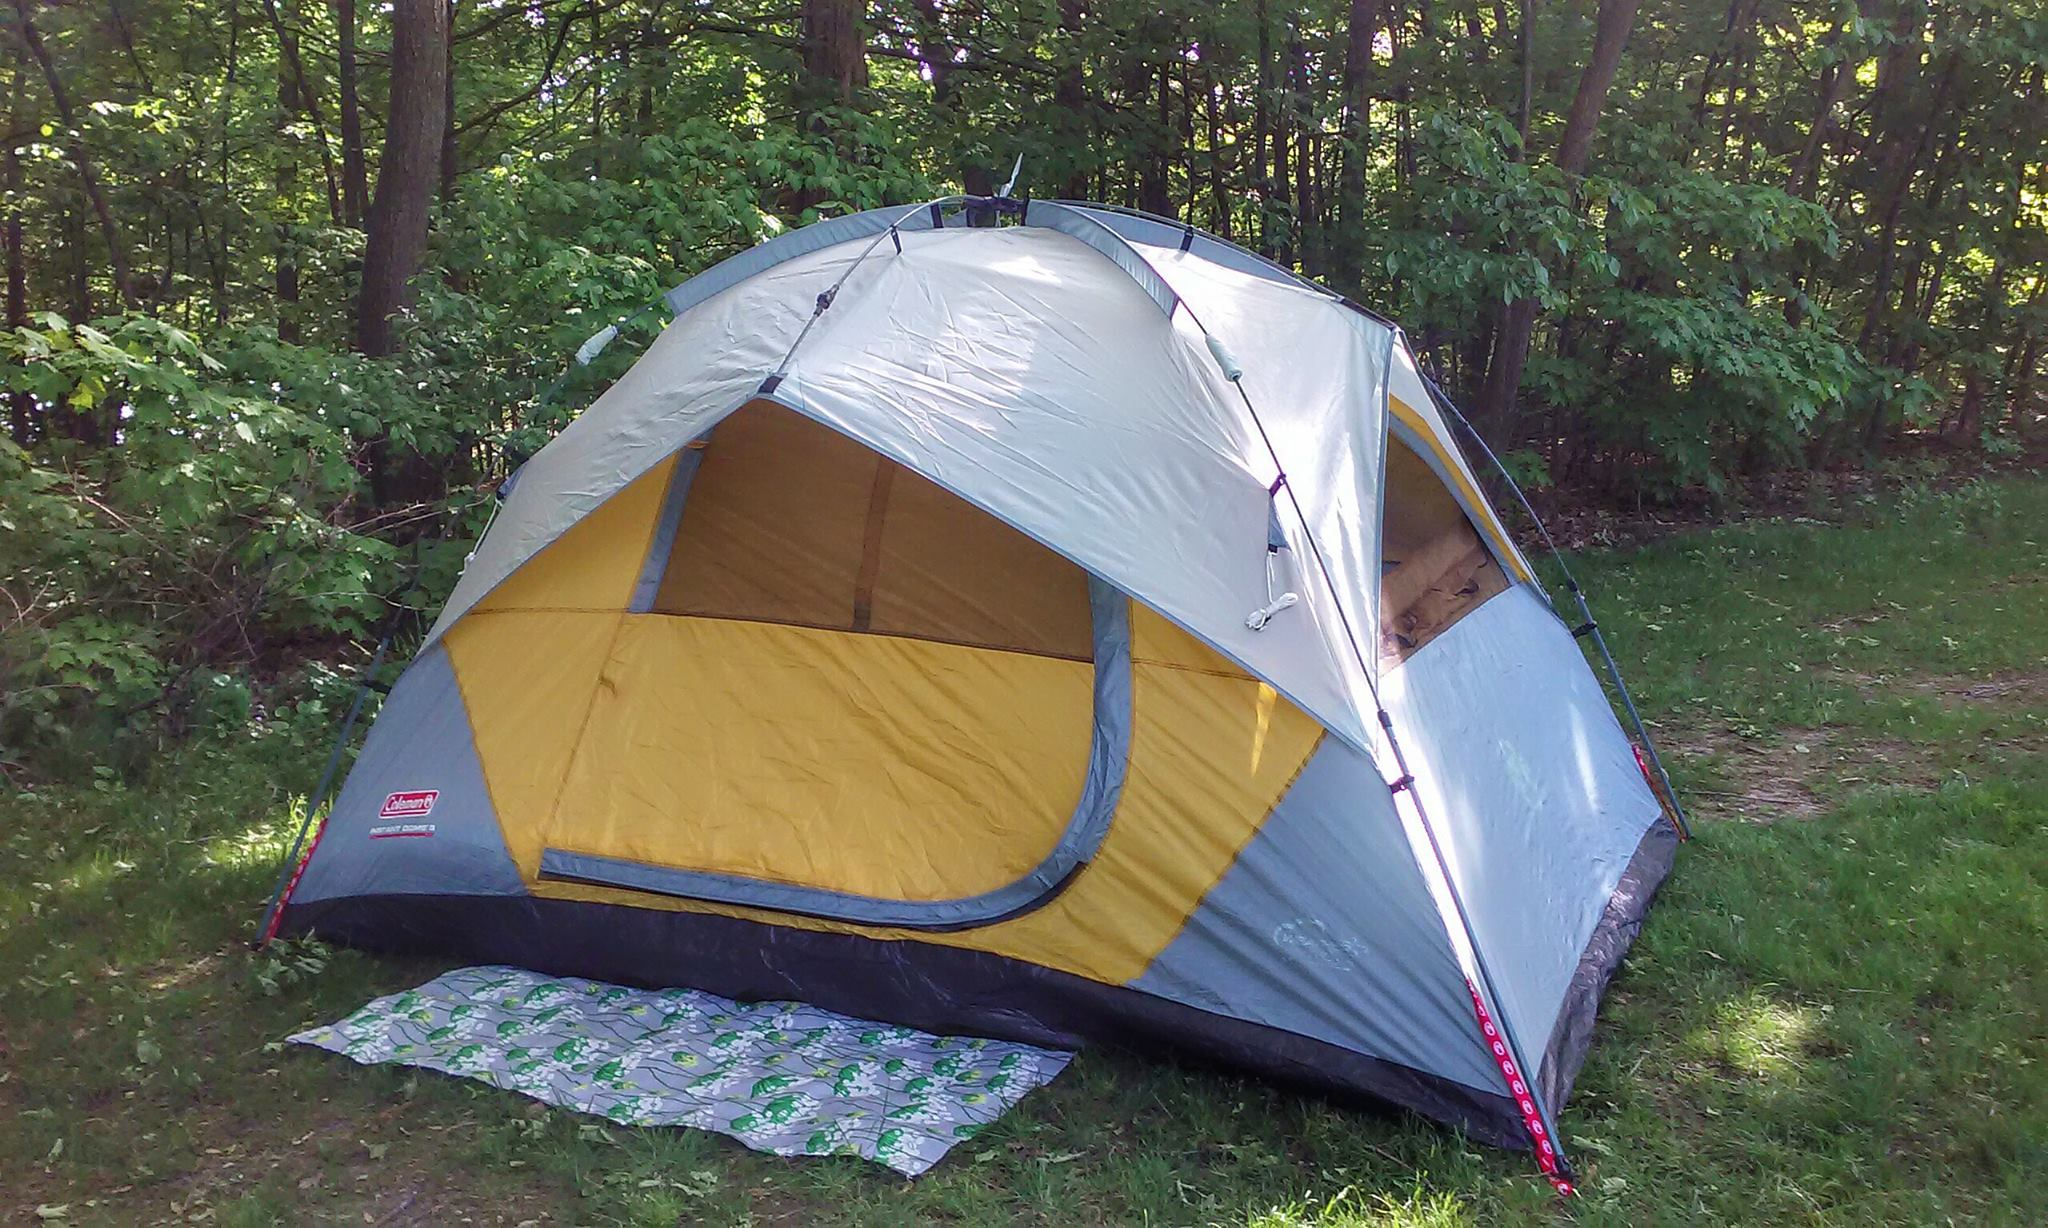 11336912_10204415567969062_2118677897249898519_o : coleman tent costco 4 person - memphite.com